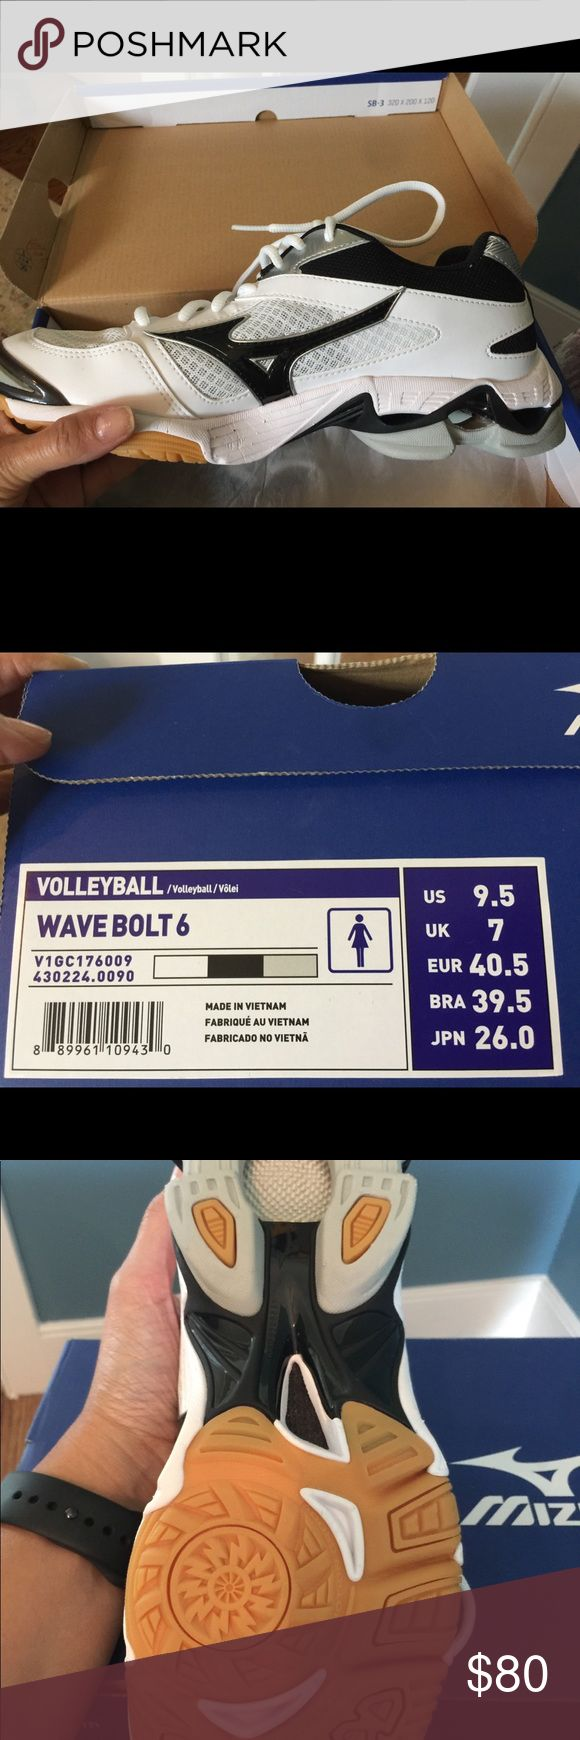 Volleyball Wave Bolt 6 Mizuno Shoe. New in box. Women's volleyball shoe. Color: White/black. Size 9.5 Paid $100. Never Worn. Style still available online for $100 but this size is sold out in some sites and color is sold out too! Mizuno Shoes Sneakers